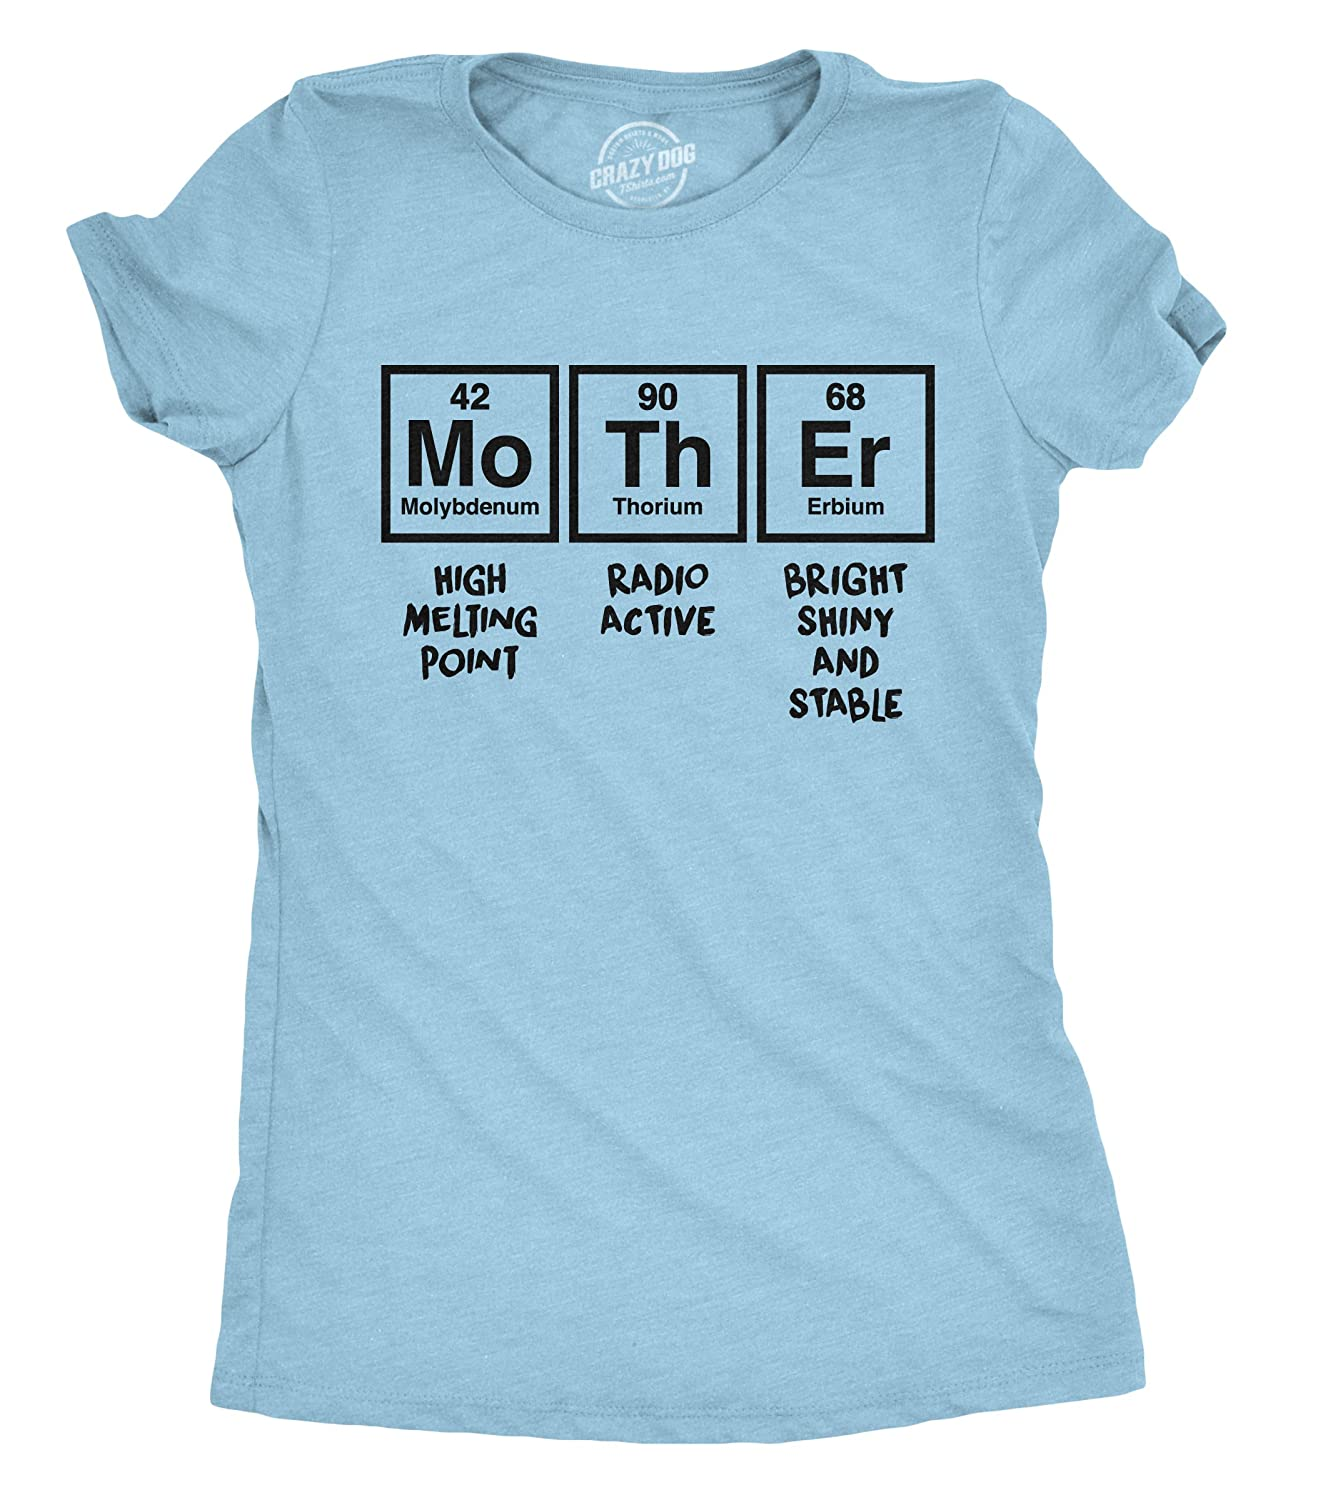 e364ba91 Amazon.com: Womens Mother Periodic Table Tshirt Funny Science Mothers Day  Tee for Ladies: Clothing